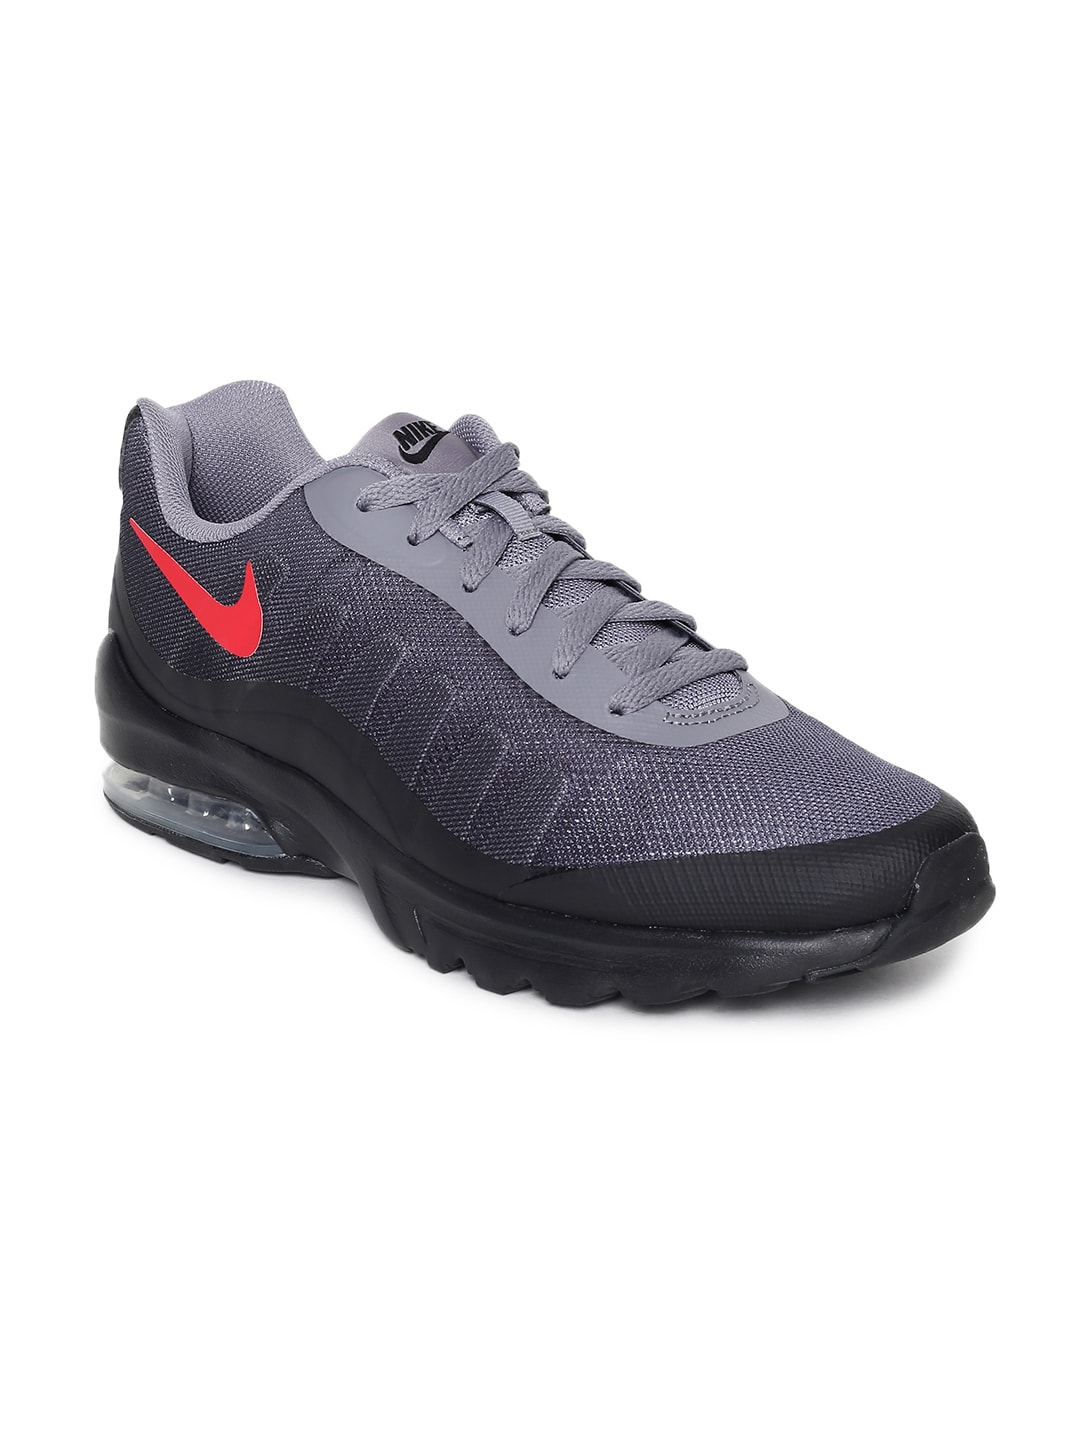 buy online adb8b ad3ab Nike Air Max Shoes - Buy Nike Air Max Shoes Online for Men   Women